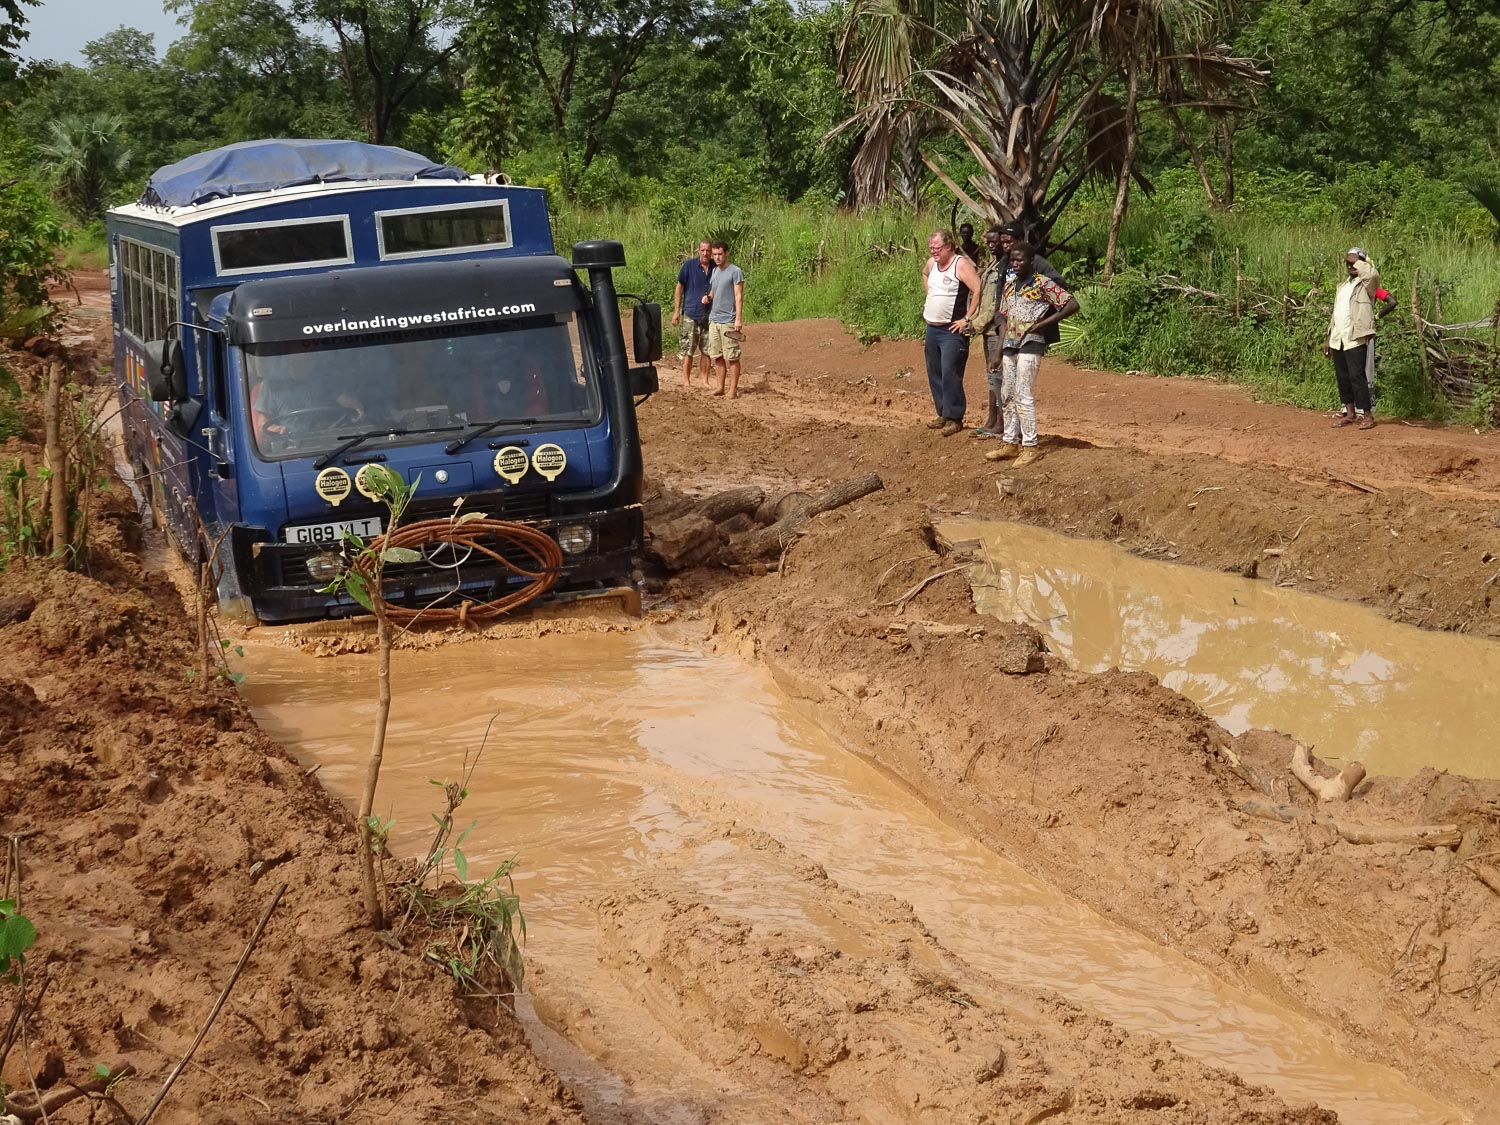 Overland-West-Africa-Tour